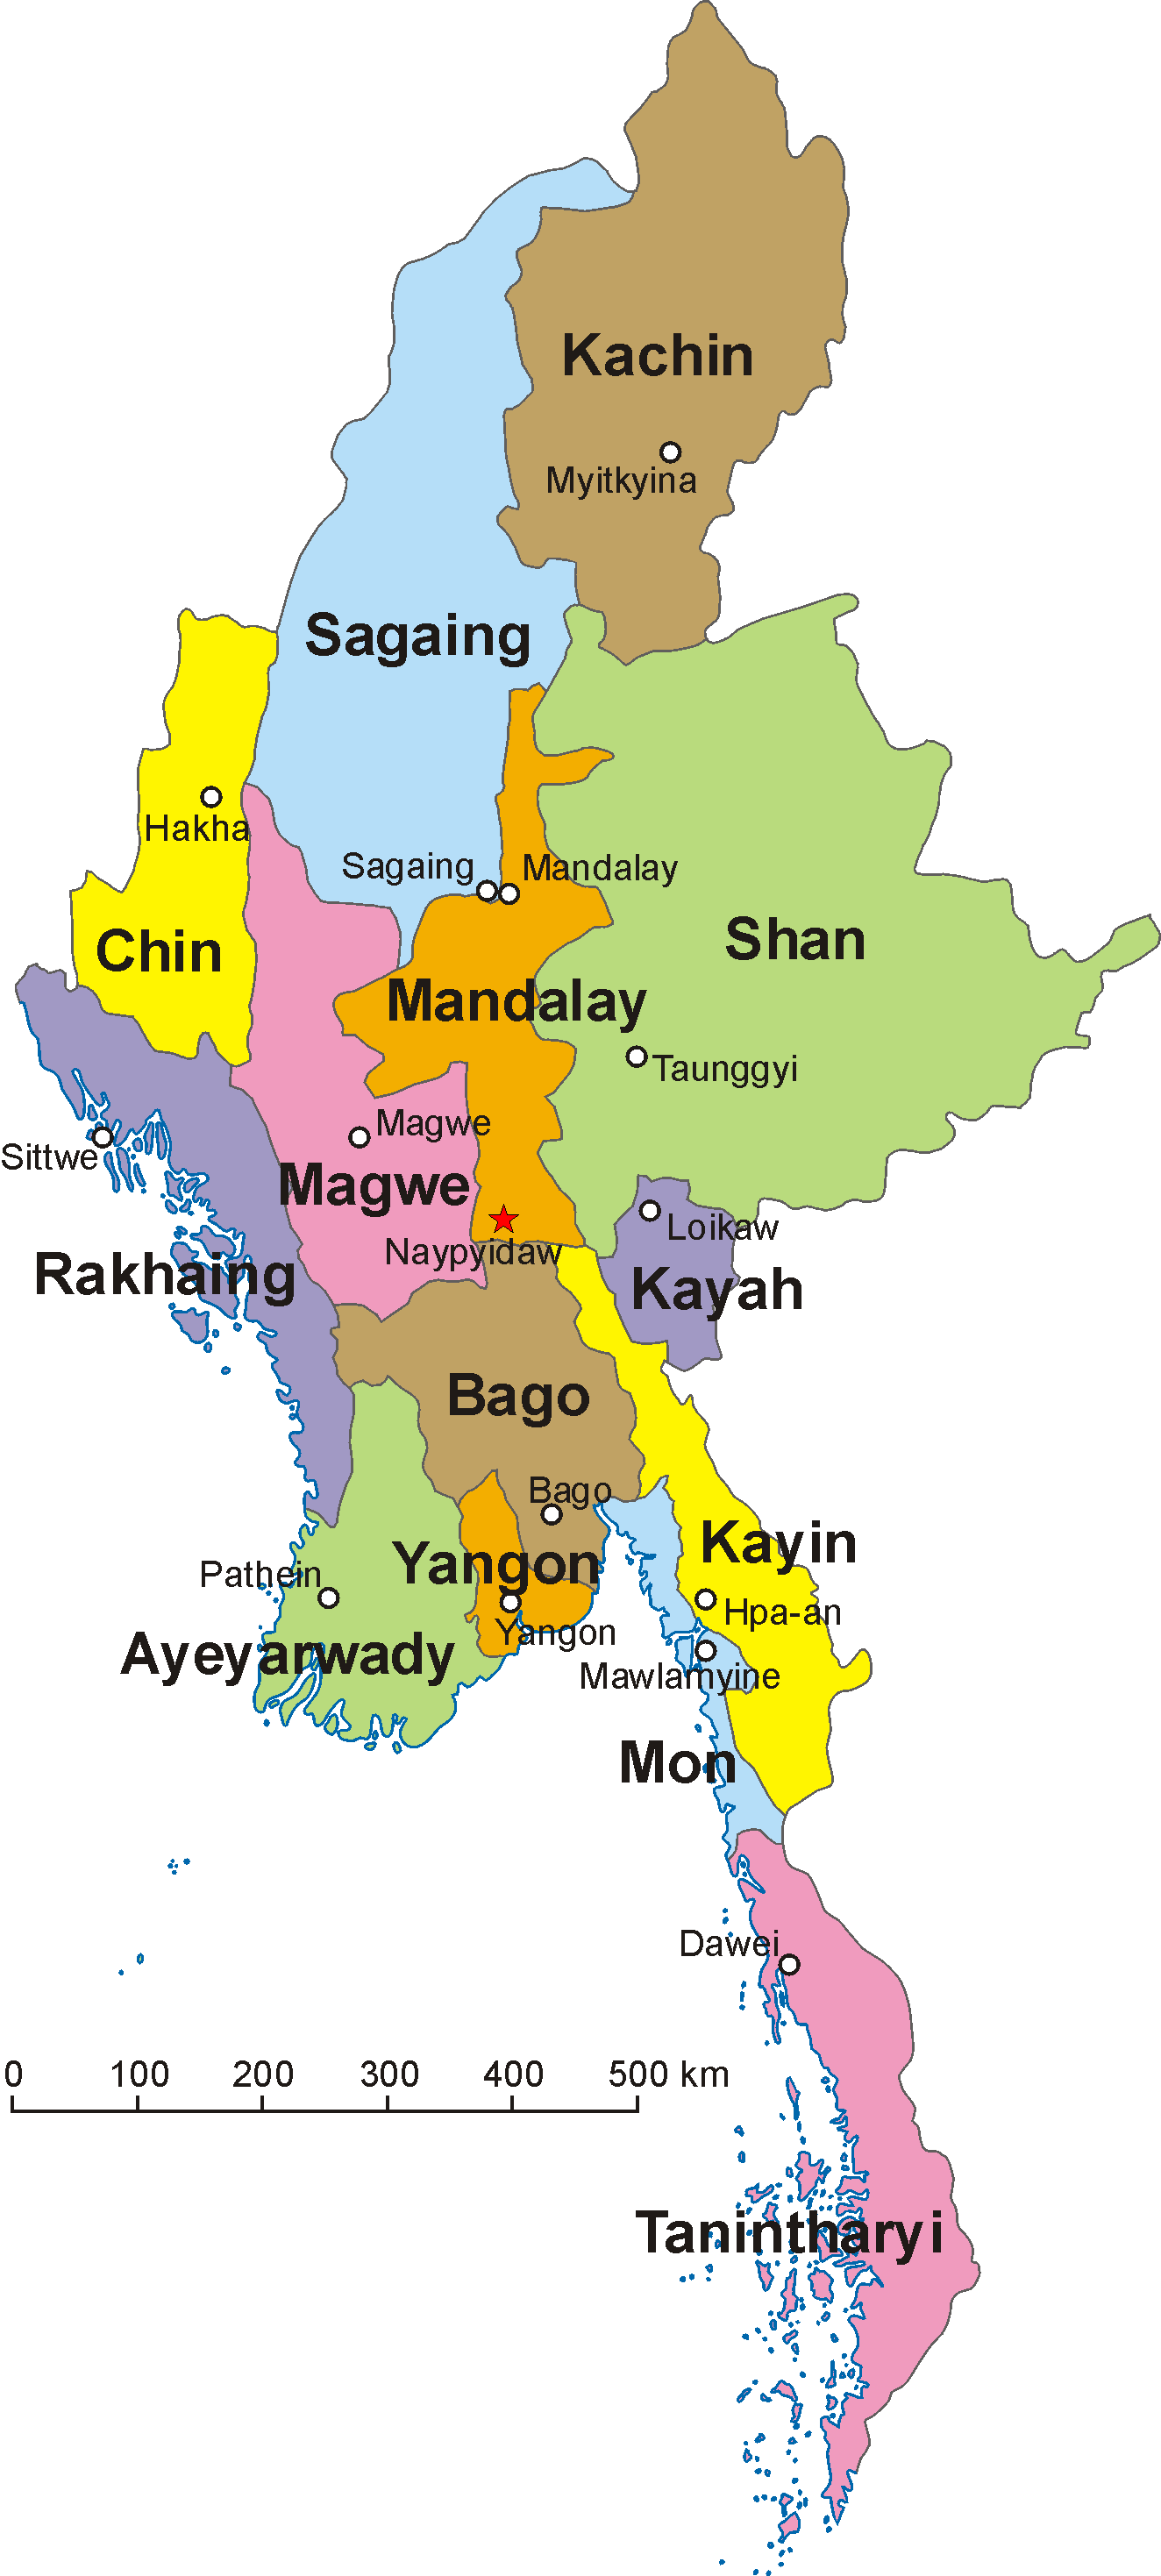 A clickable map of Burma/Myanmar exhibiting its first-level administrative divisions.